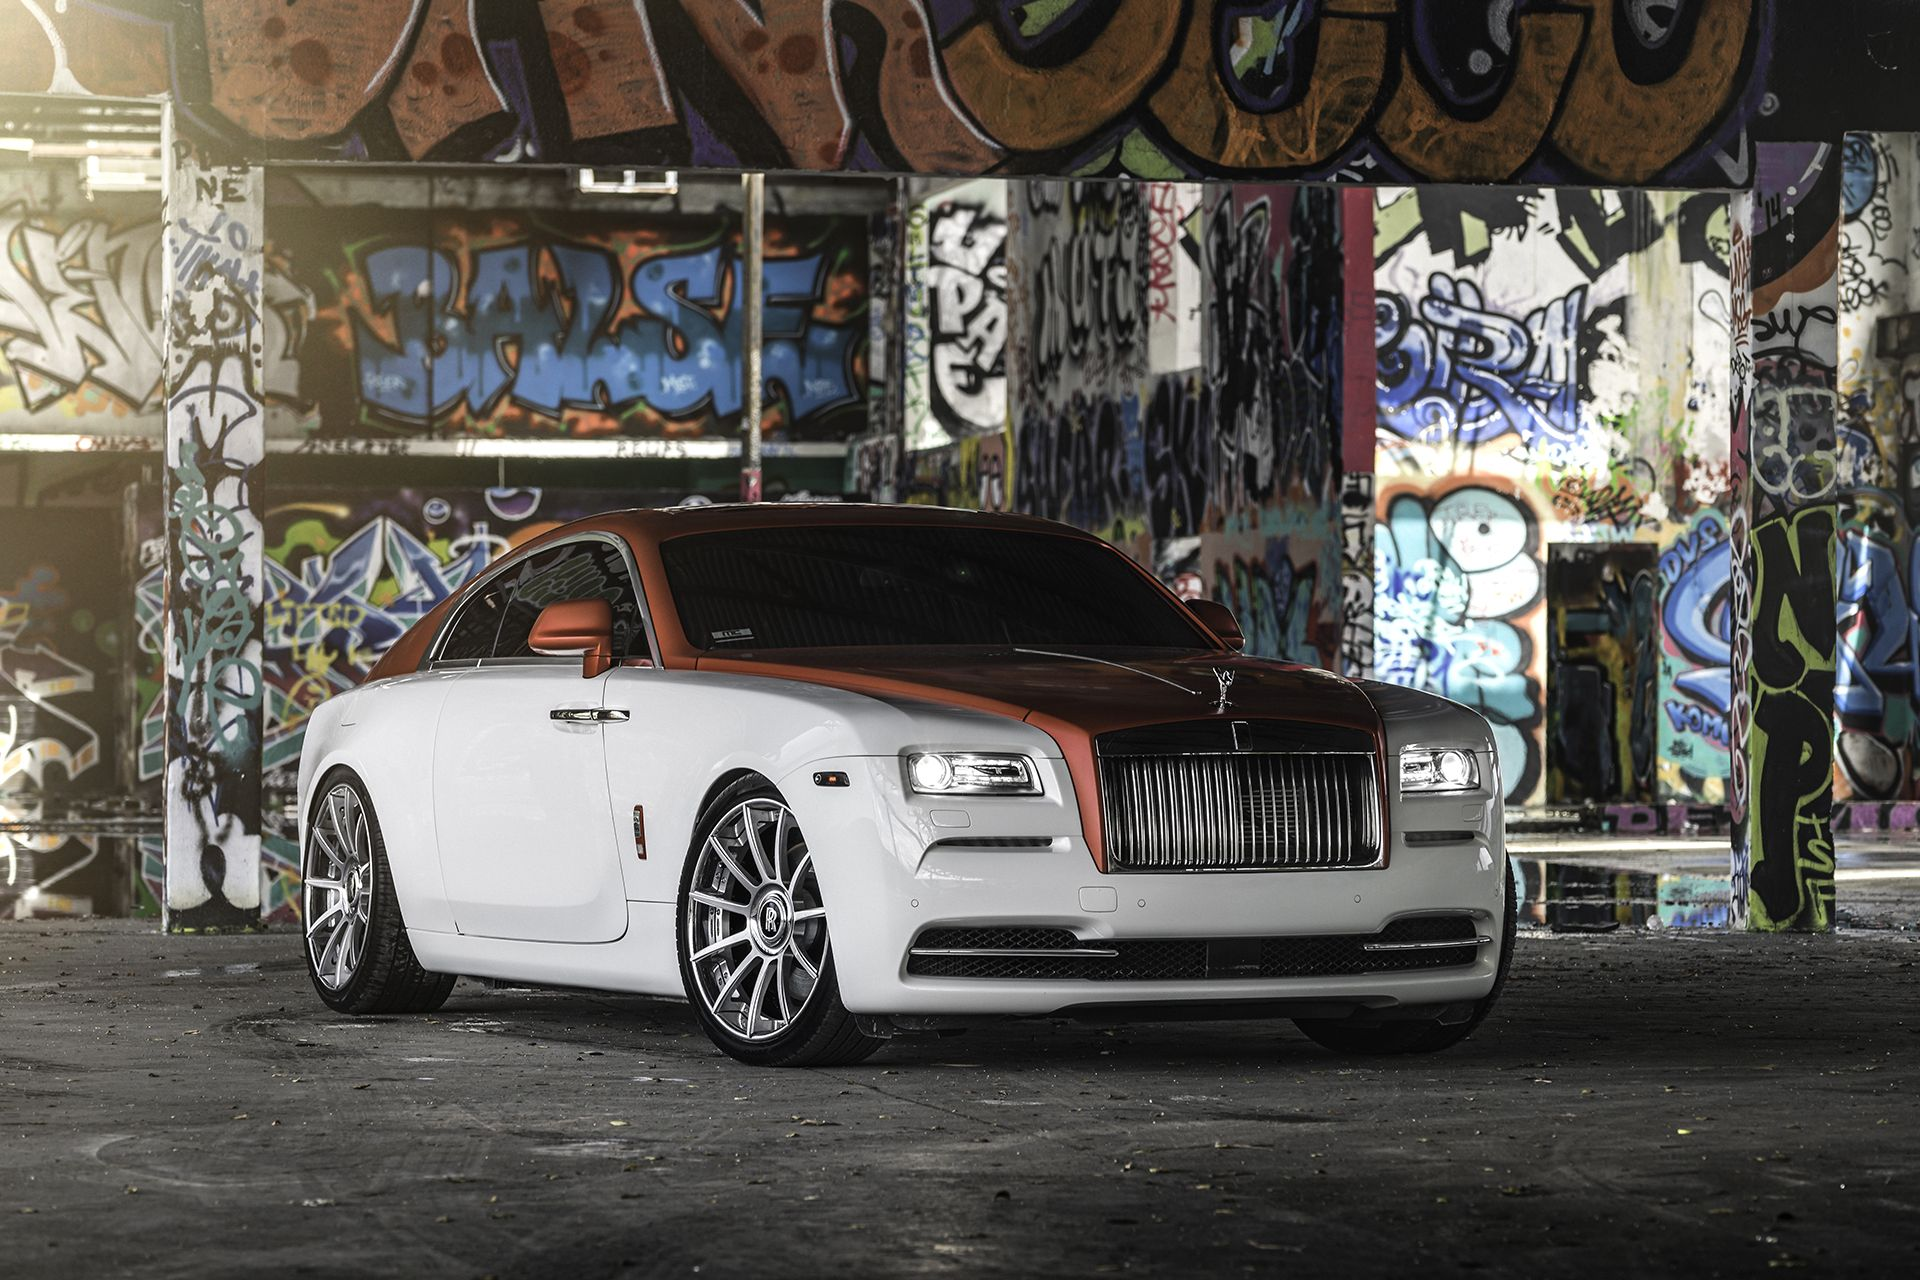 Rolls Royce Wraith With A Two Tone Paint Job Featuring The White Hue On Bottom And Ravishing Candy Le Red Up Top